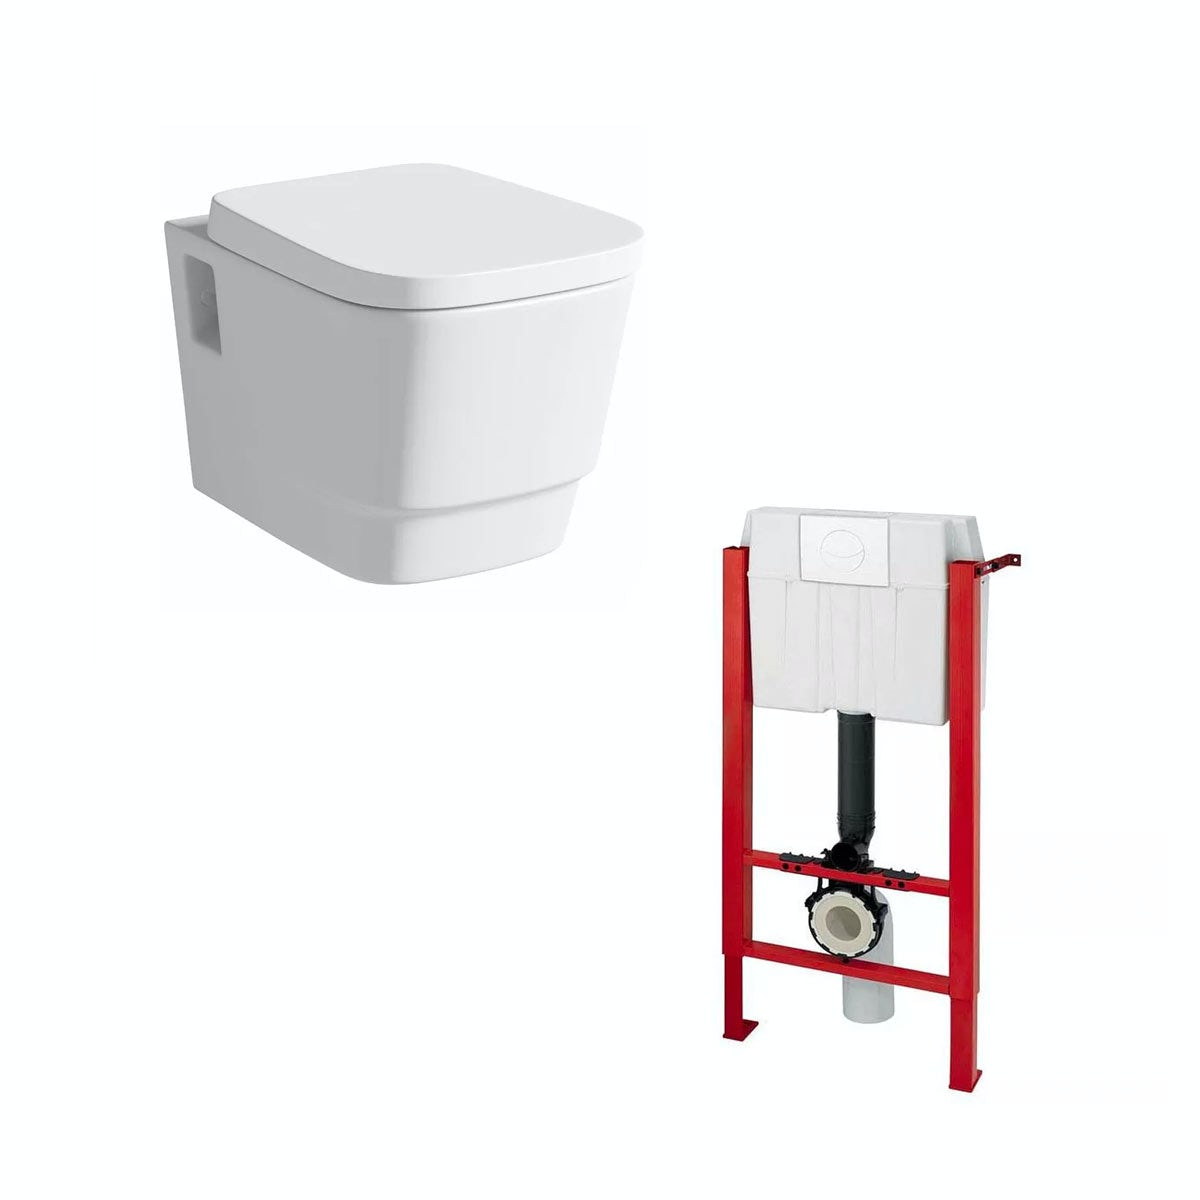 Mode Foster wall hung toilet and wall mounting frame